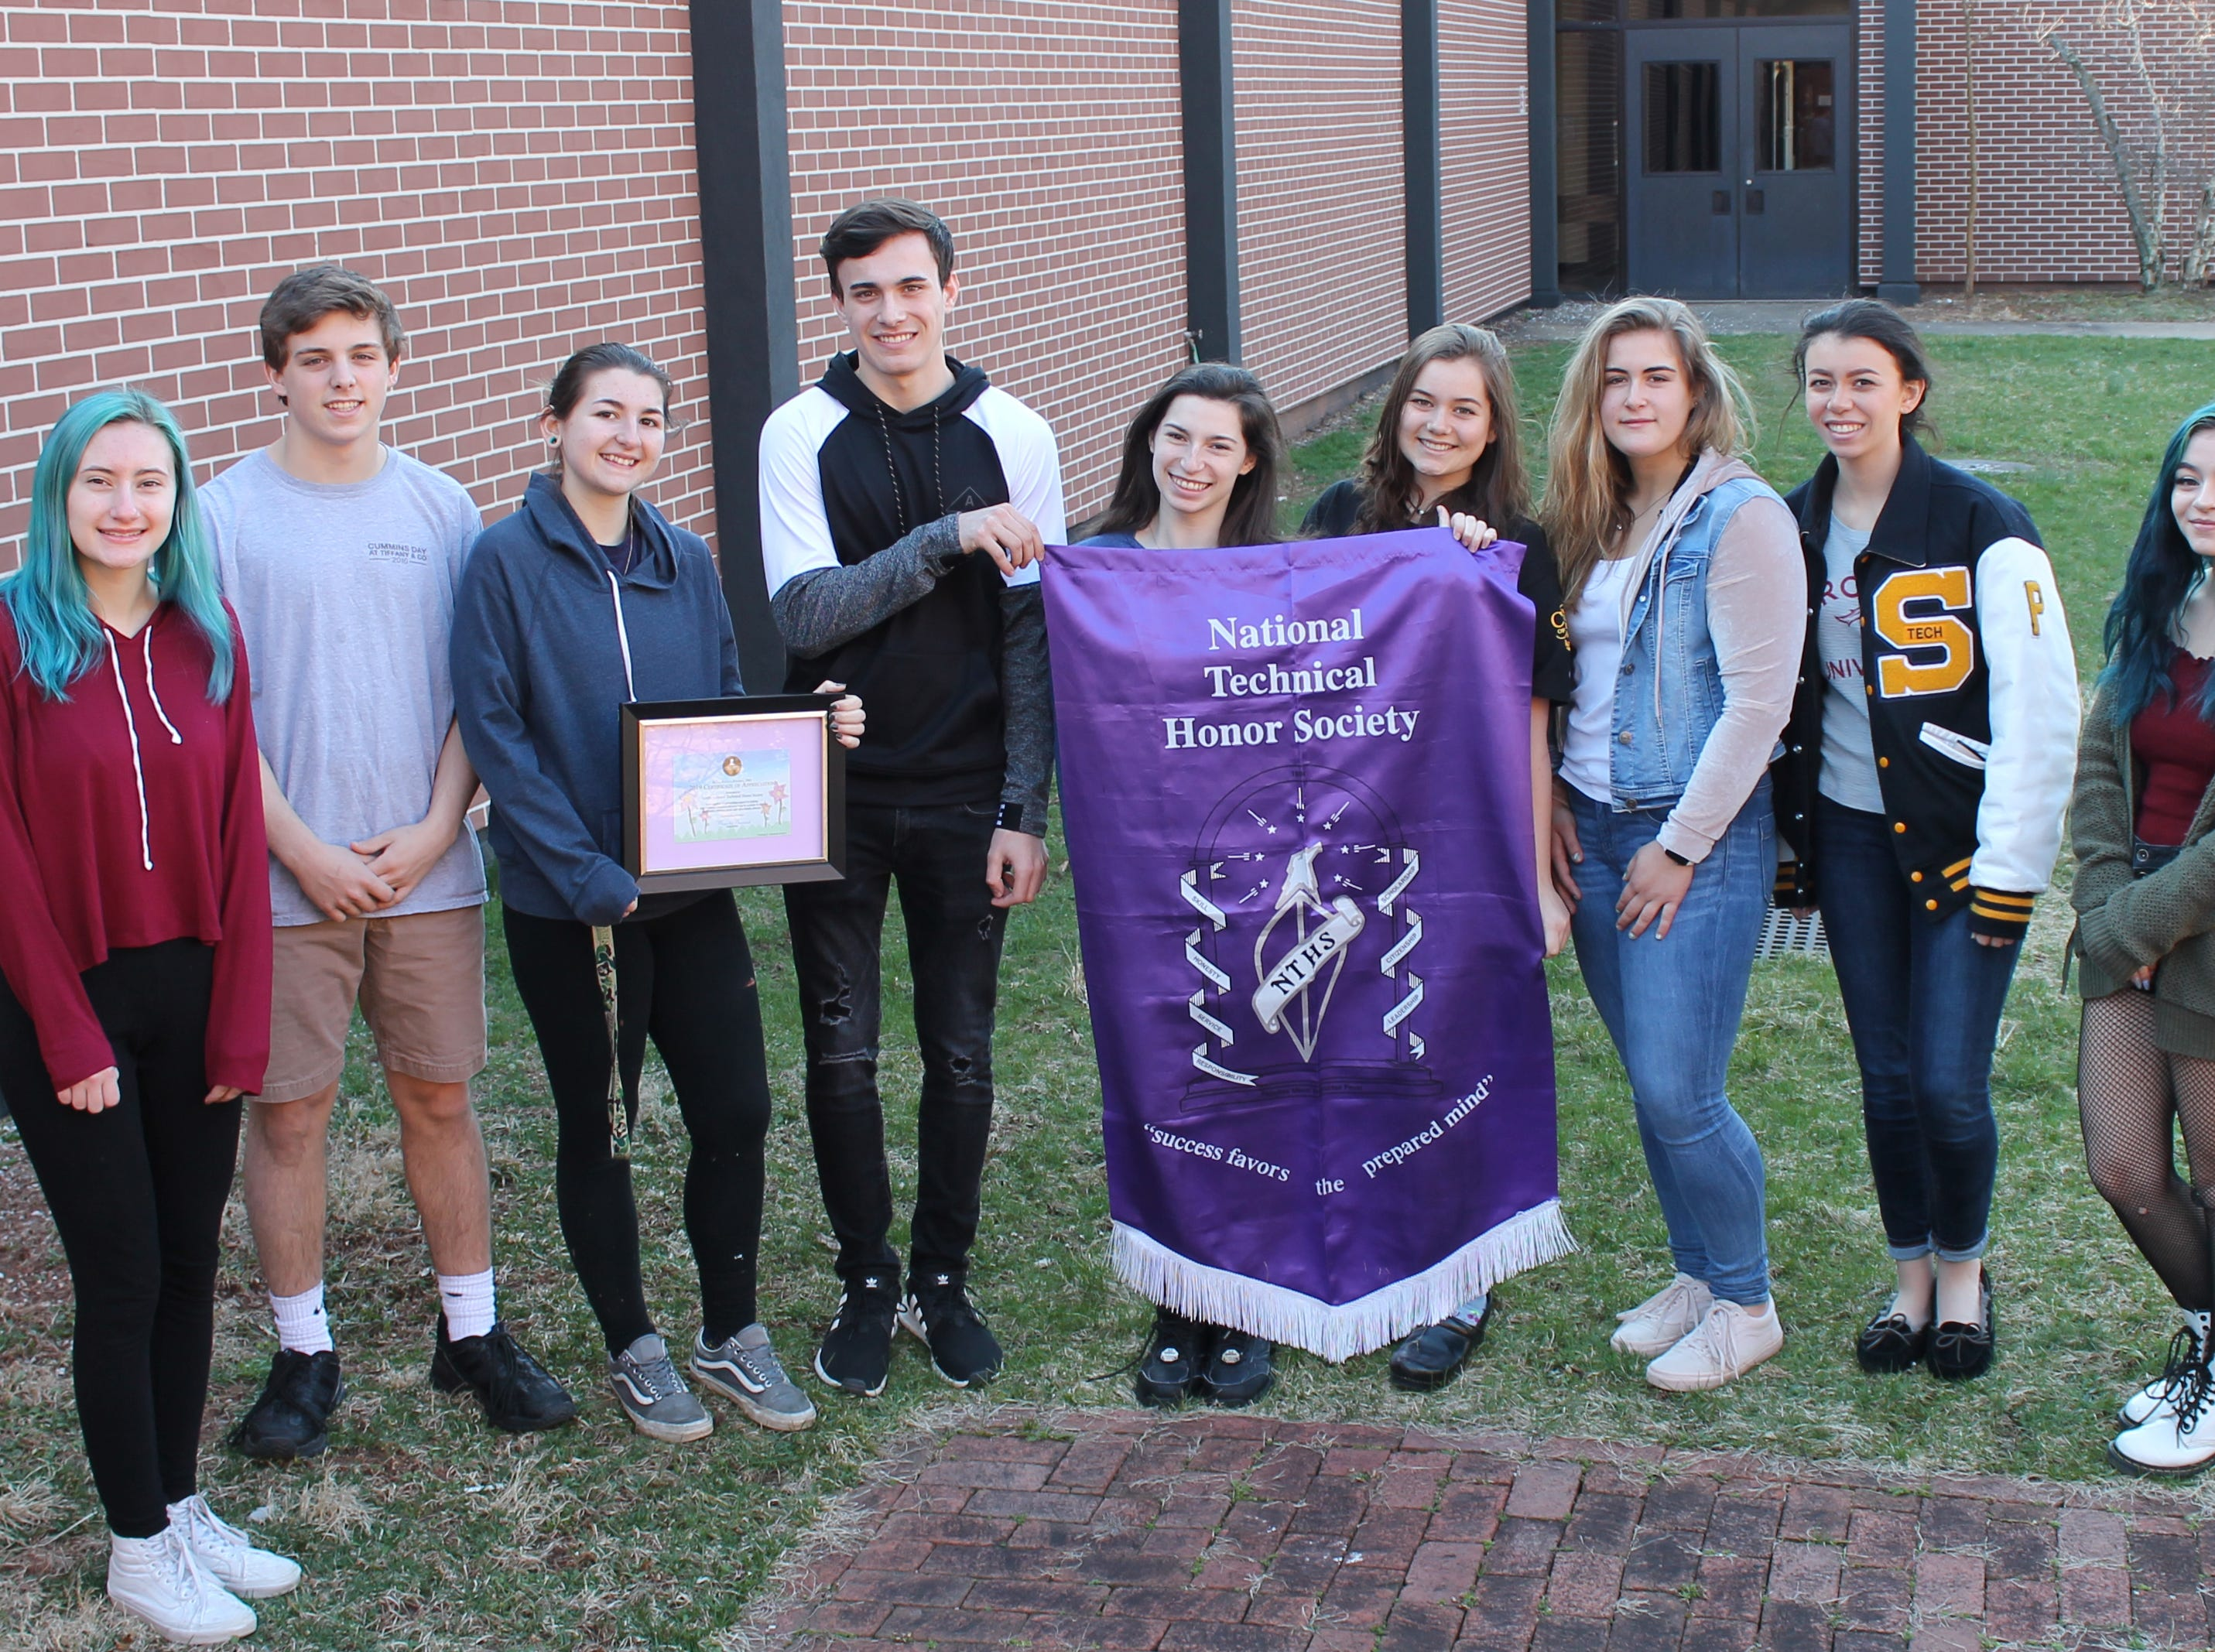 National Technical Honor Society at SCVTHS receives a Certificate of Appreciation